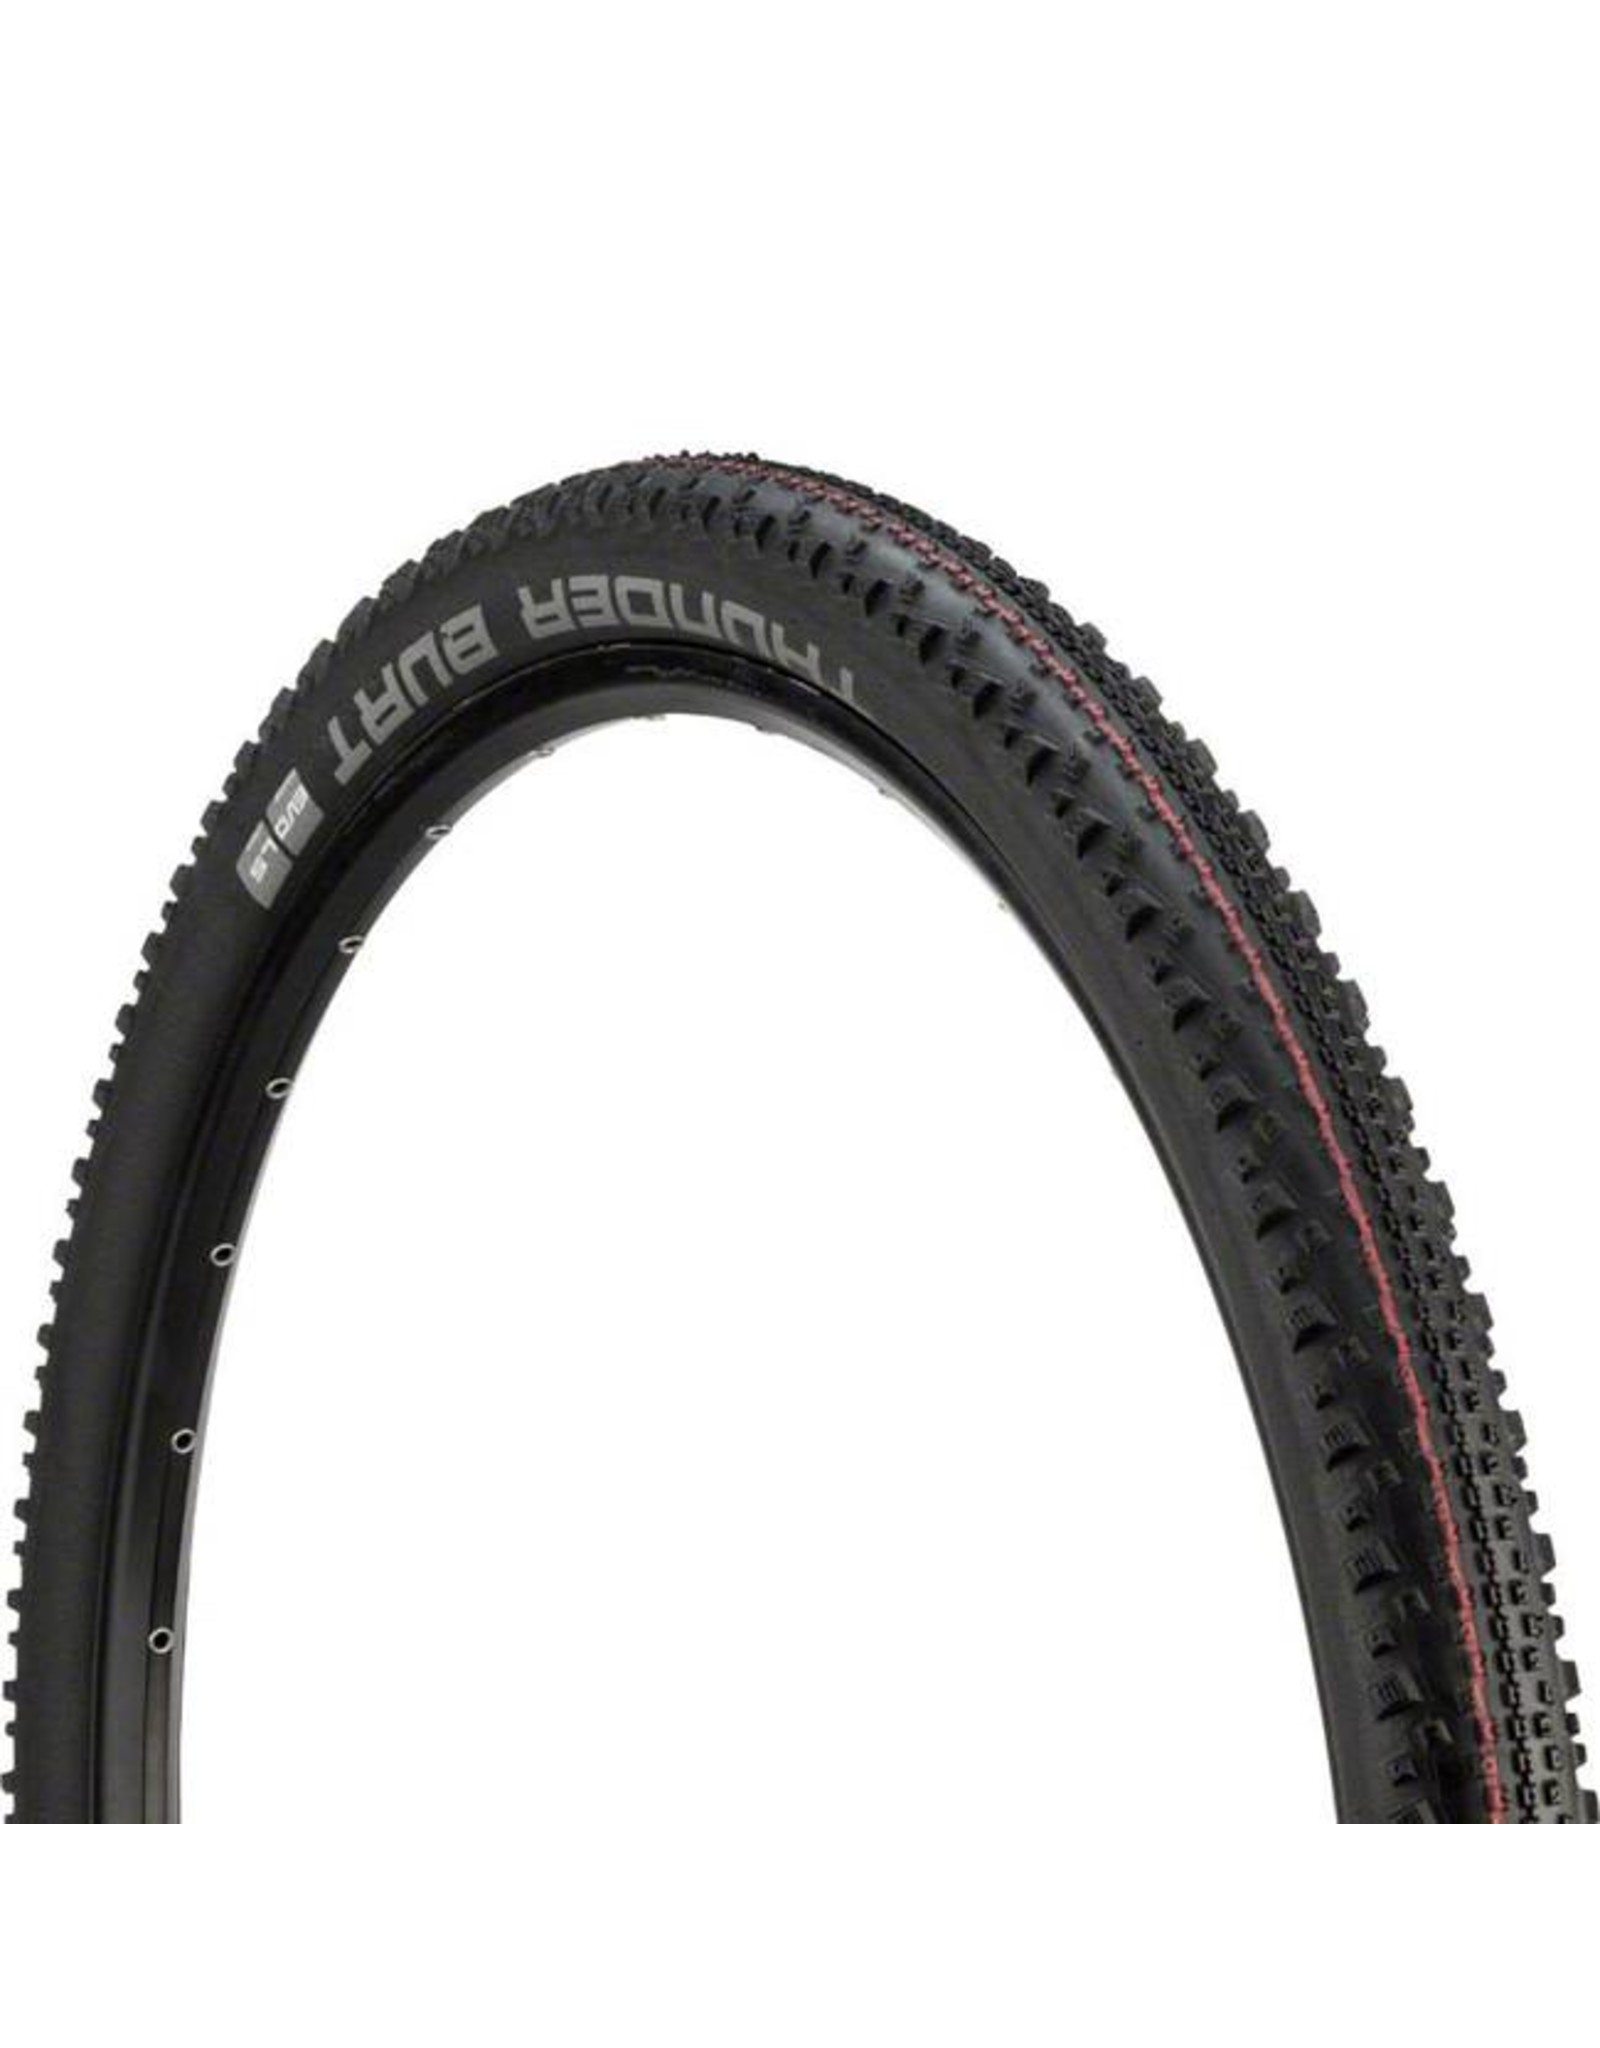 "Schwalbe Schwalbe Thunder Burt Tire: 29 x 2.10"", Folding Bead, Evolution Line, Addix Speed Compound, LiteSkin, Black"